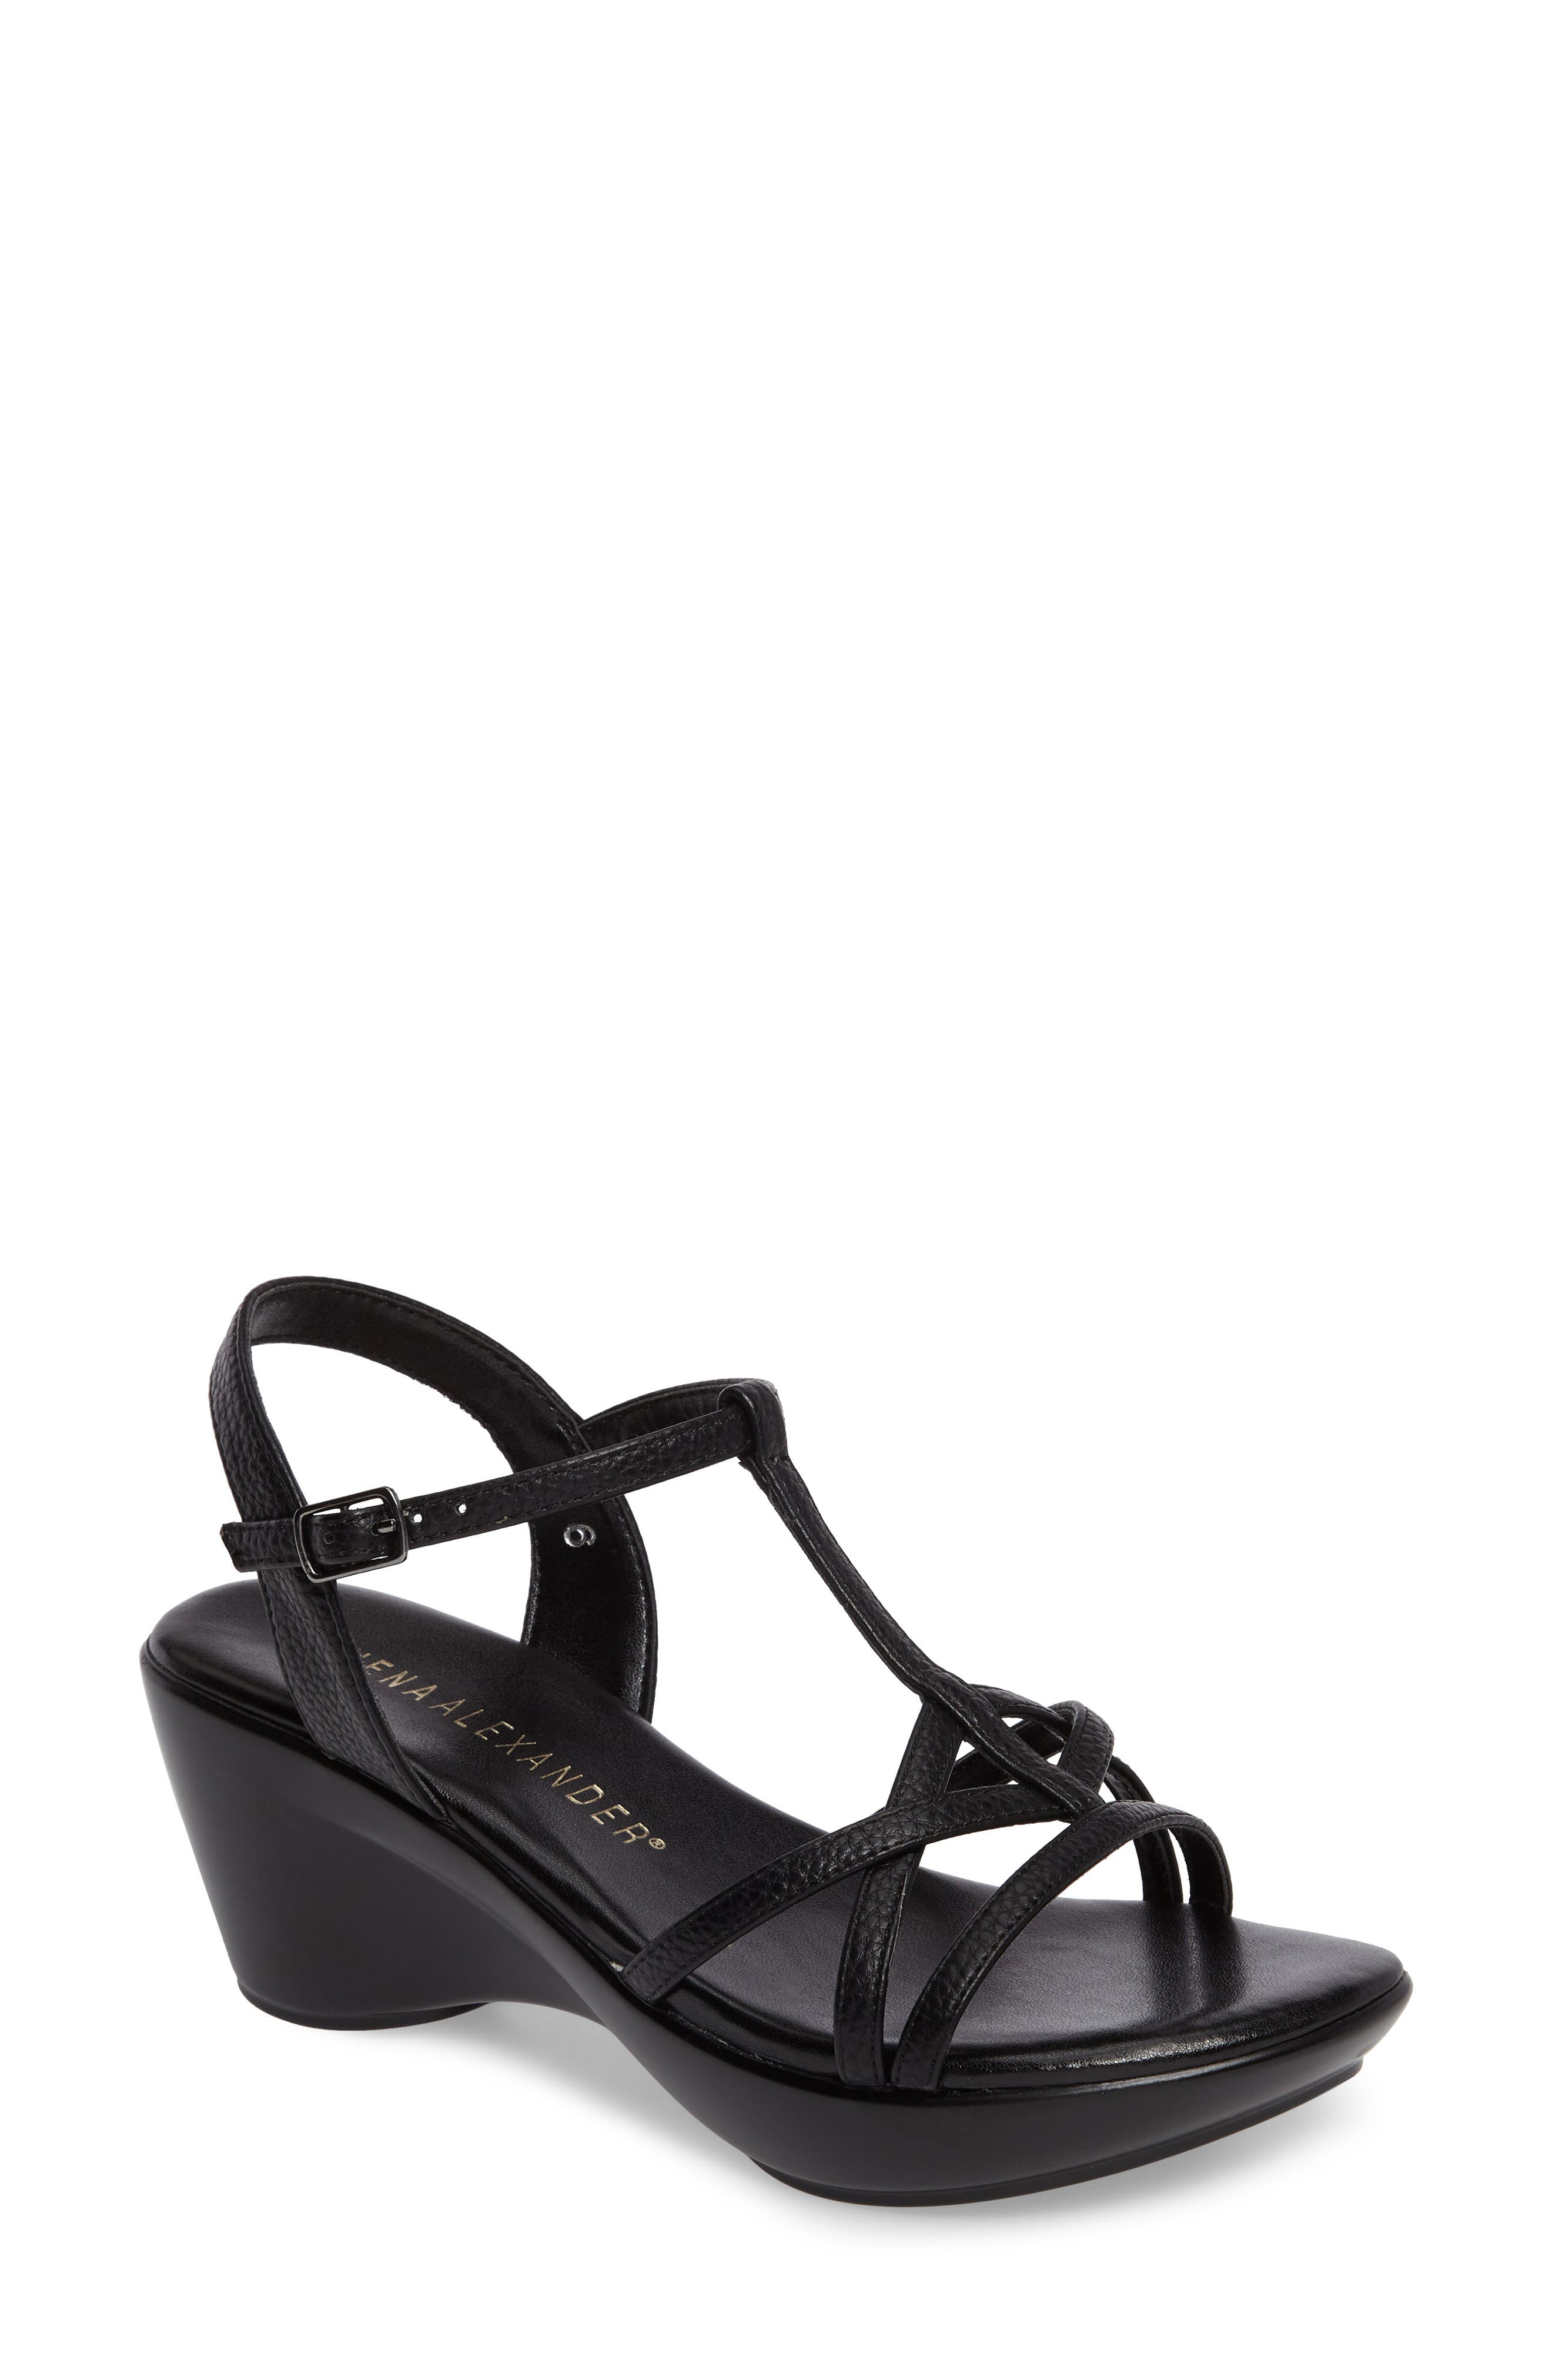 Alternate Image 1 Selected - Athena Alexander Cassort T-Strap Sandal (Women)